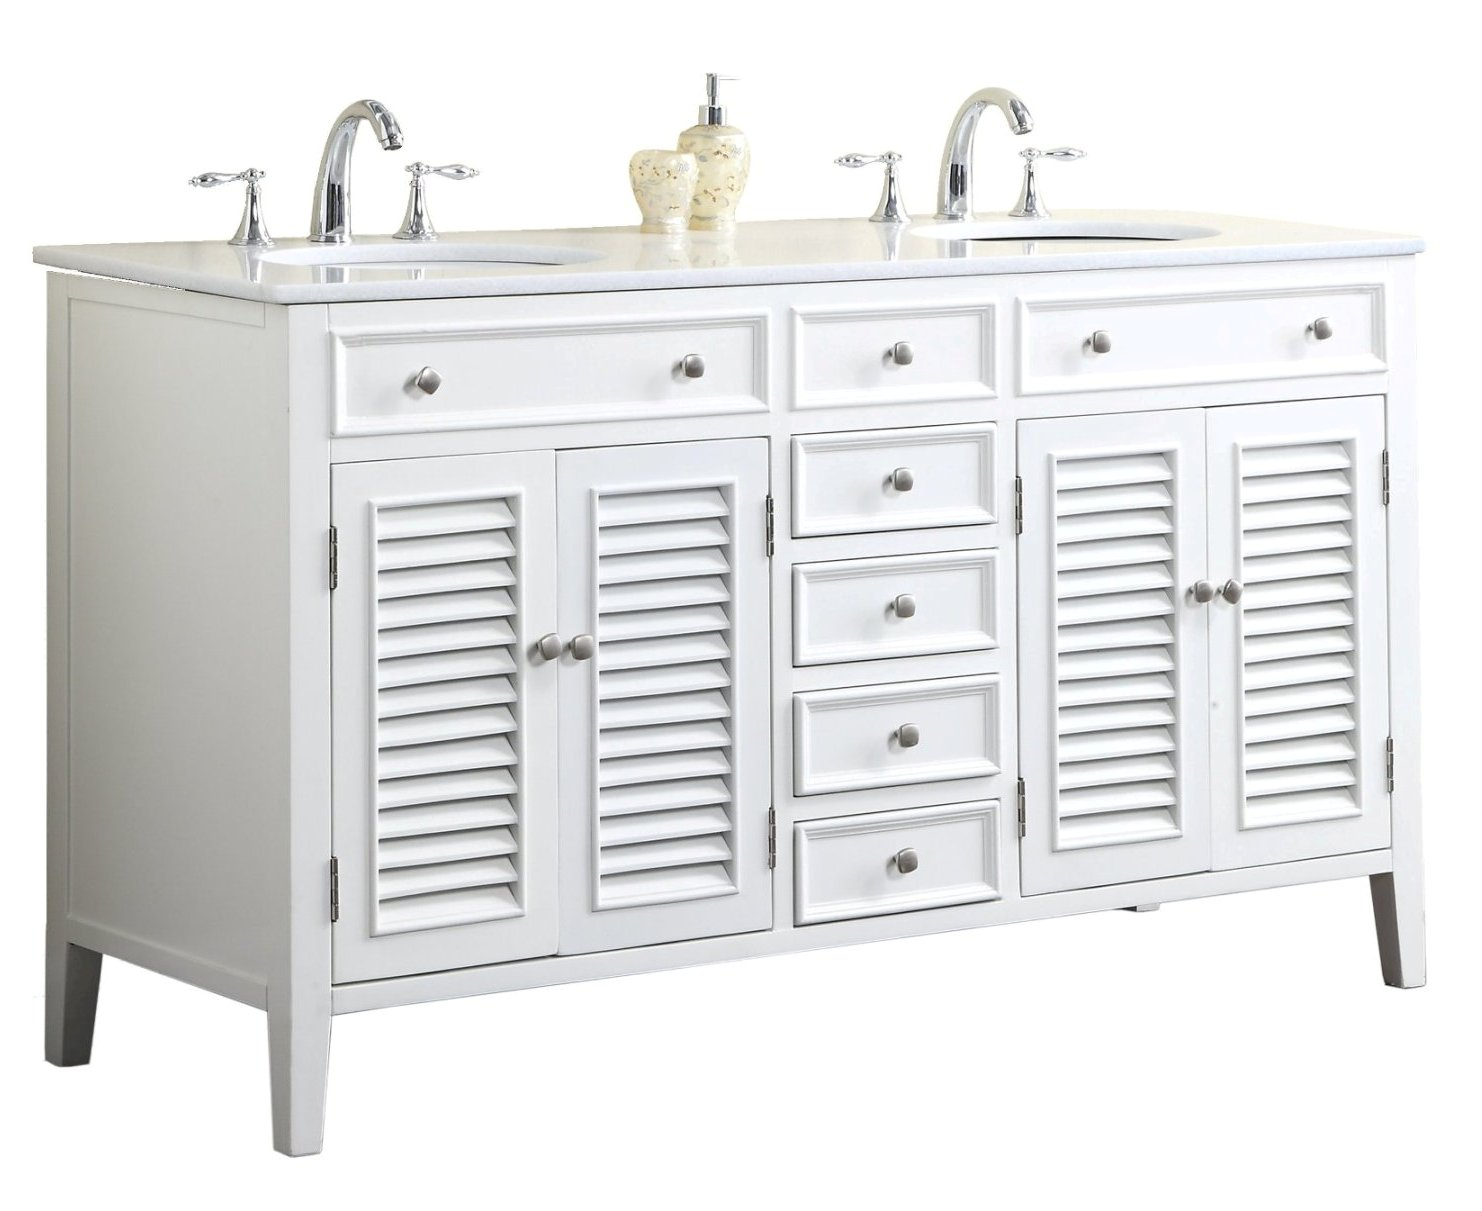 60 inch bathroom vanity cottage style white cabinet white top for Bathroom 60 inch double vanities